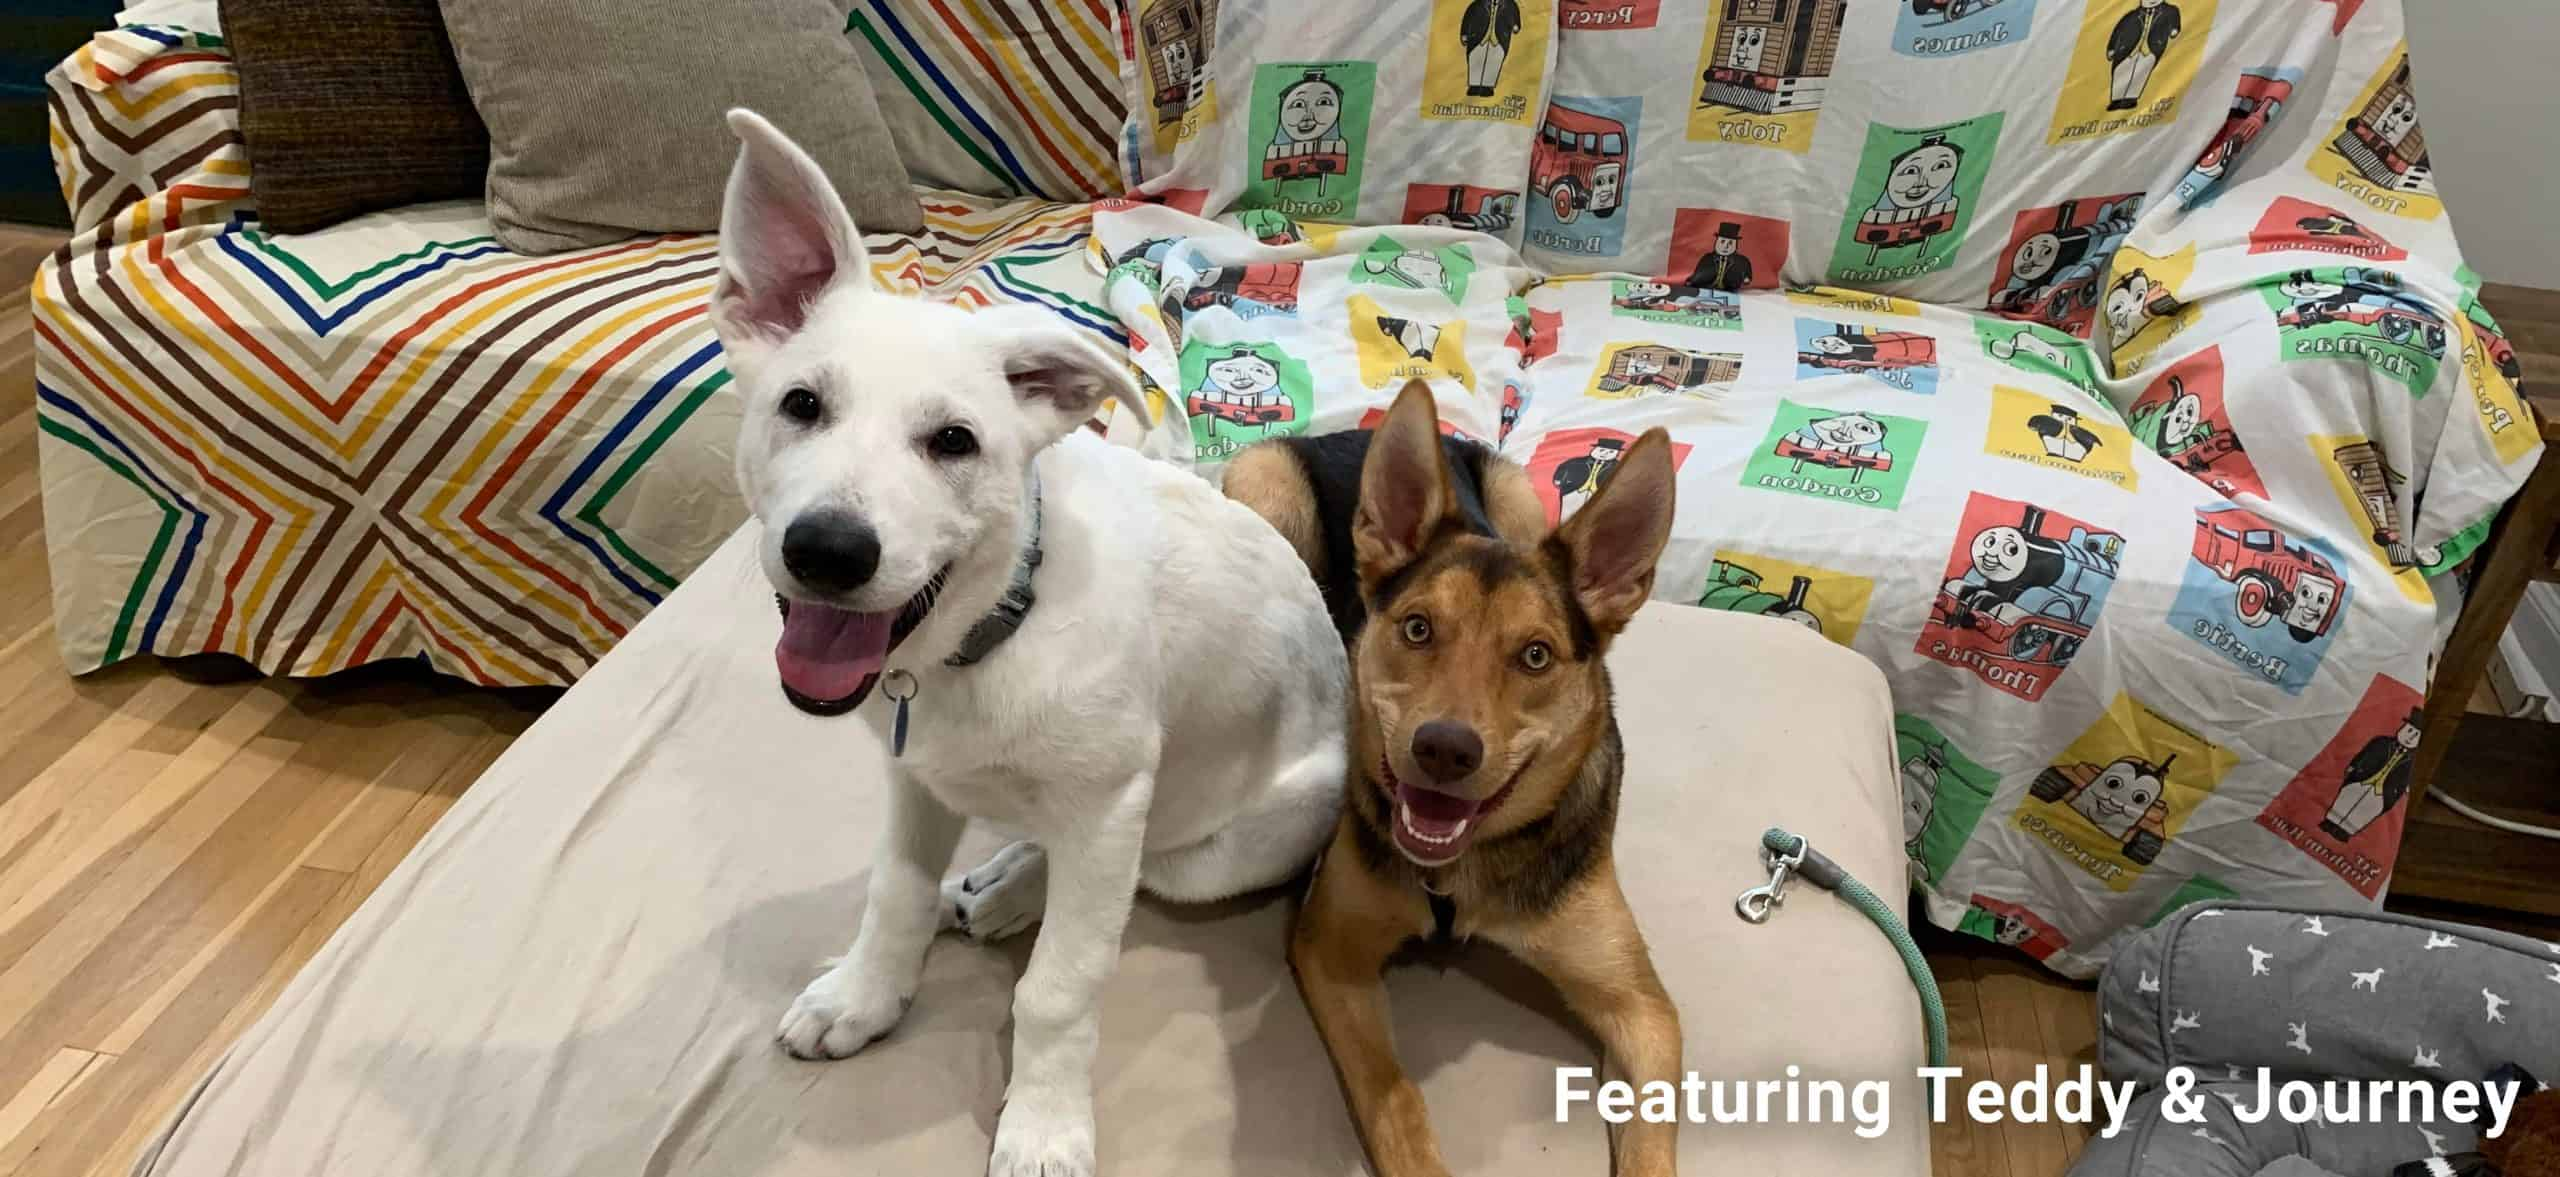 Puppies teddy and journey sitting on a couch, smiling at the camera. Text says Featuring Teddy & Journey